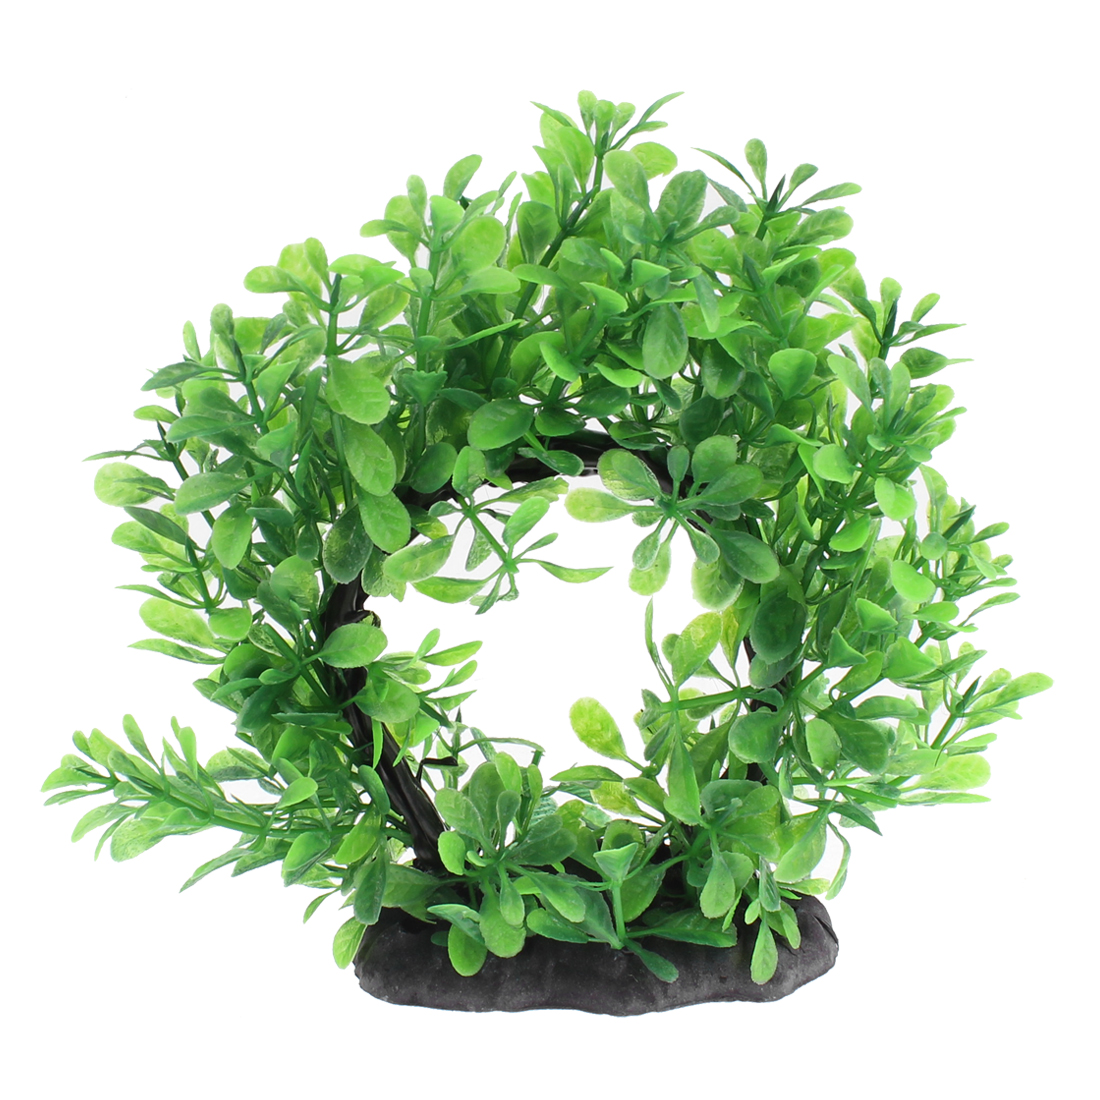 Aquarium Plastic Emulational Curved Shape Plant Ornament